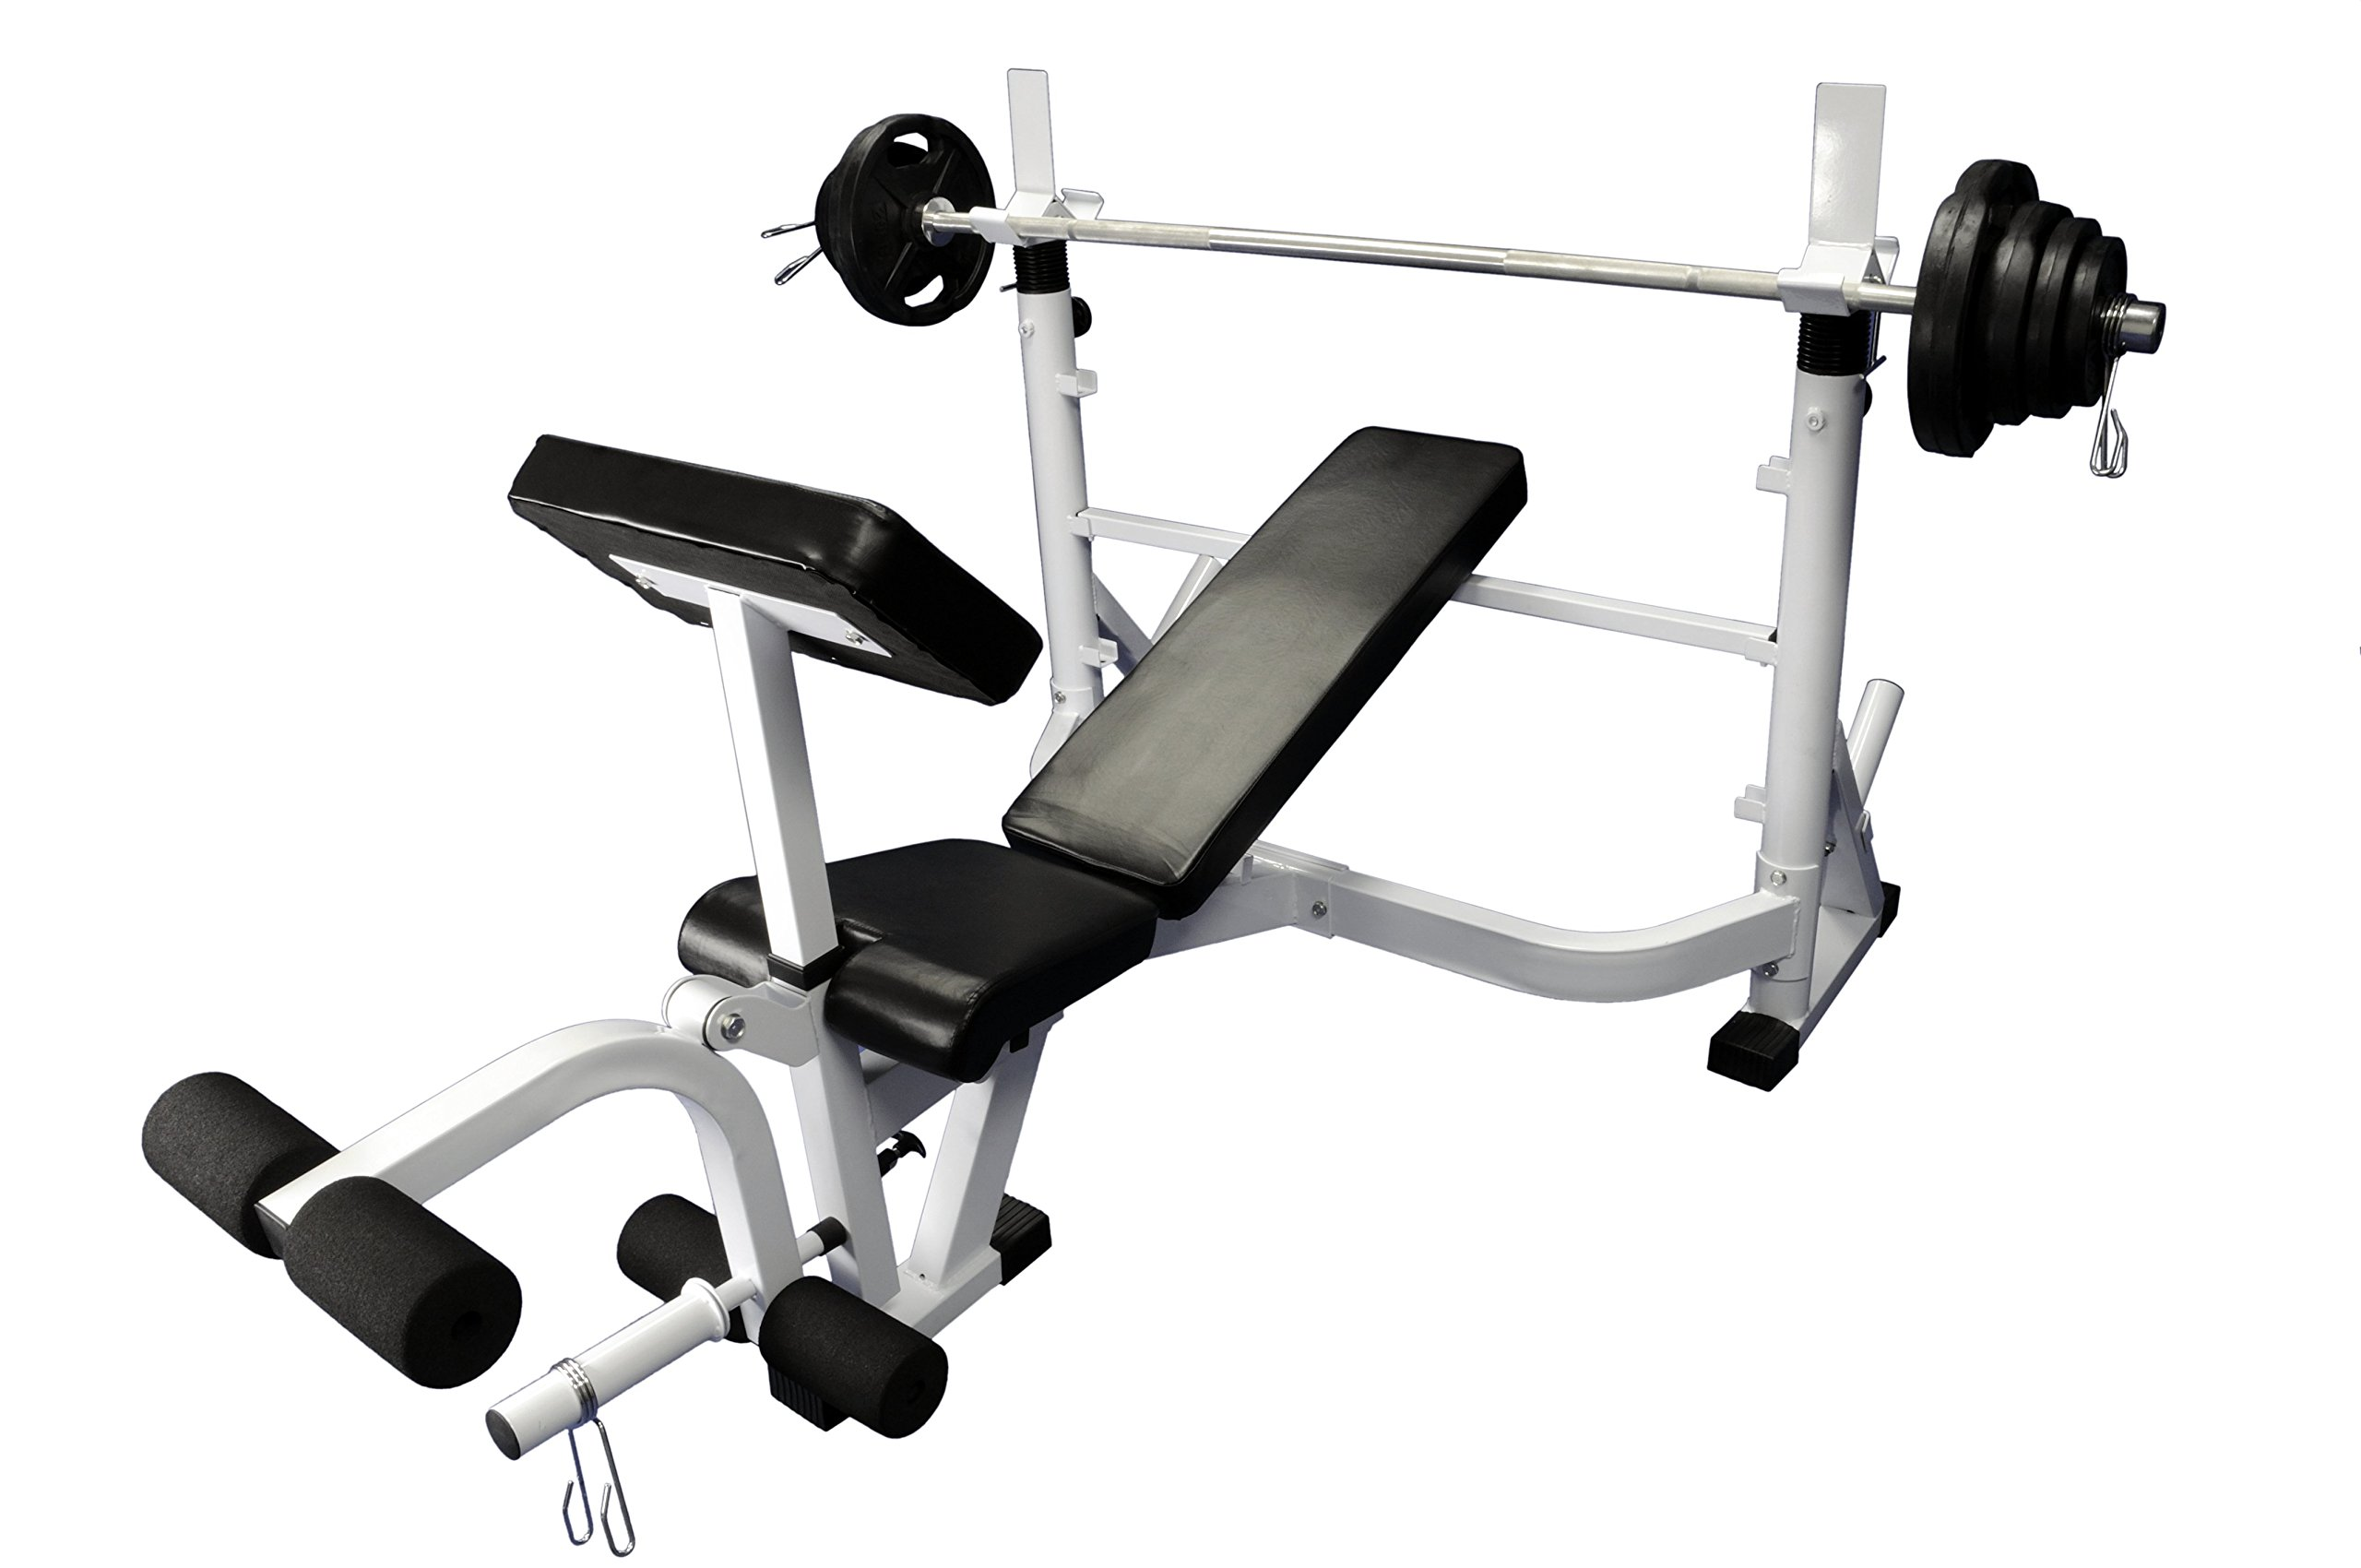 Ader Sporting Goods Heavy Duty Olympic Universal White Bench w/ 300 Lbs Weight Grey Olympic Set by Ader Sporting Goods